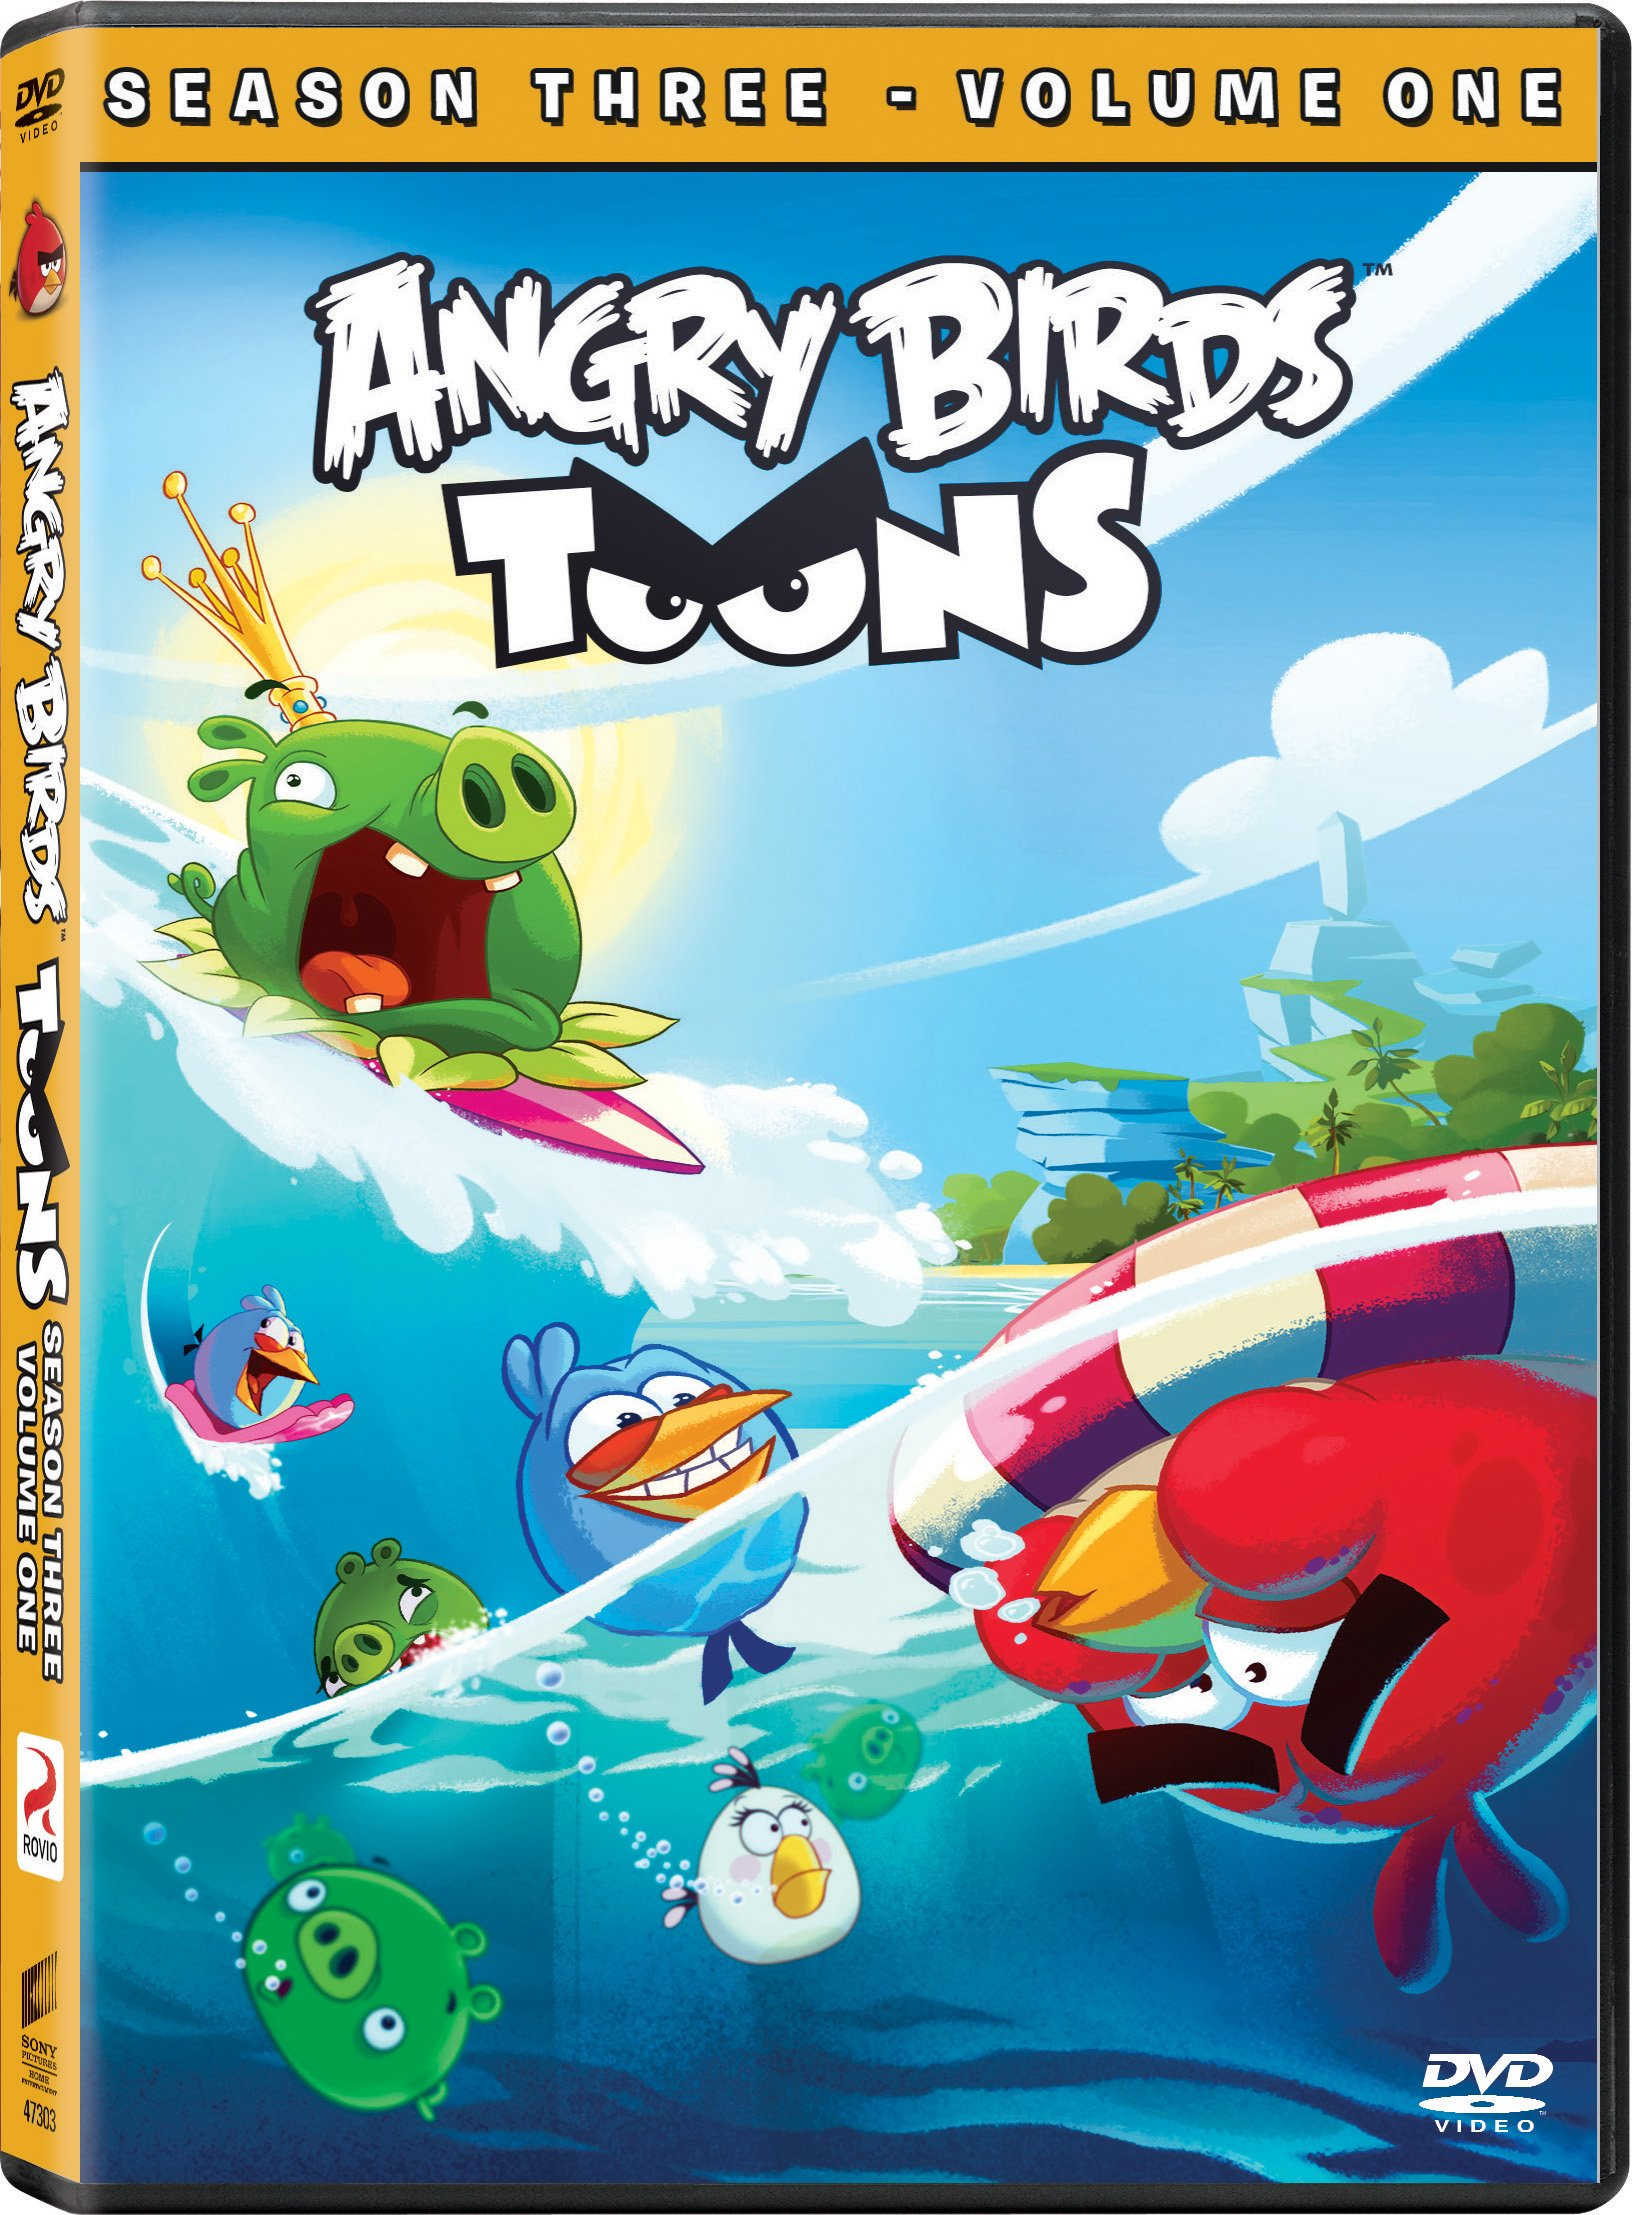 DVD : Angry Birds Toons: Season 3 Volume 1 (AC-3, Widescreen, Subtitled, Dolby)